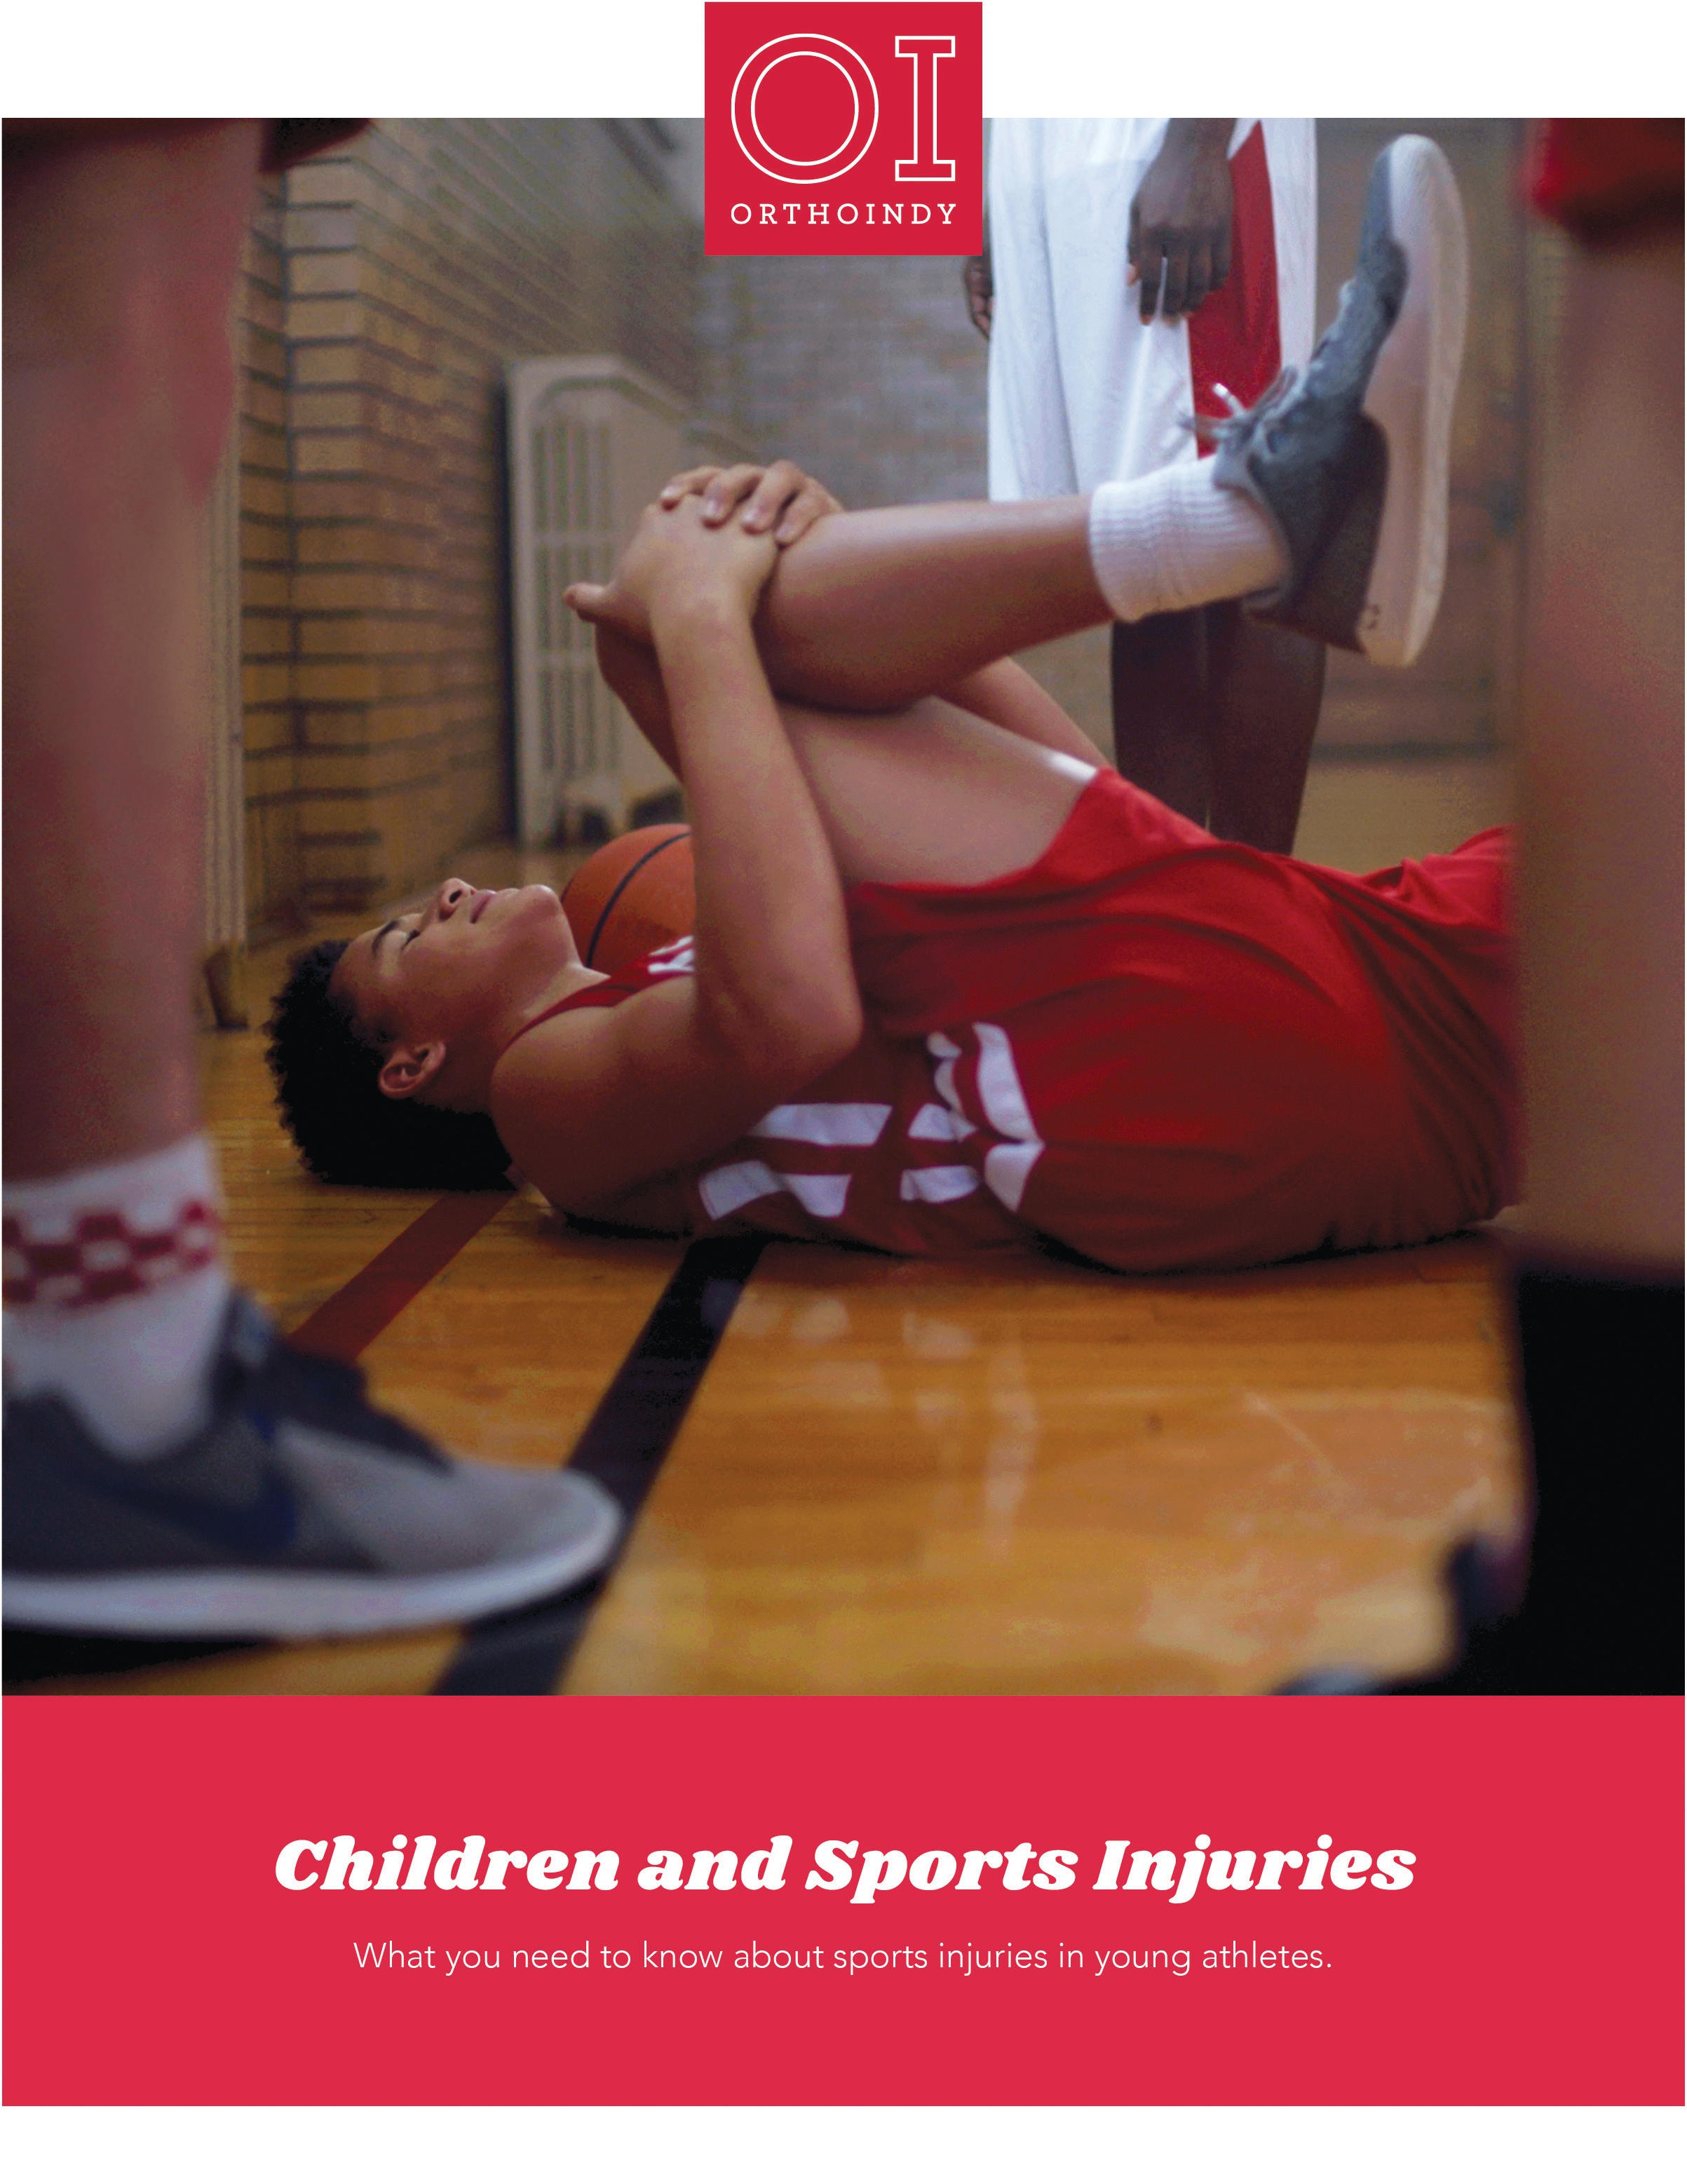 Your child and sports injuries